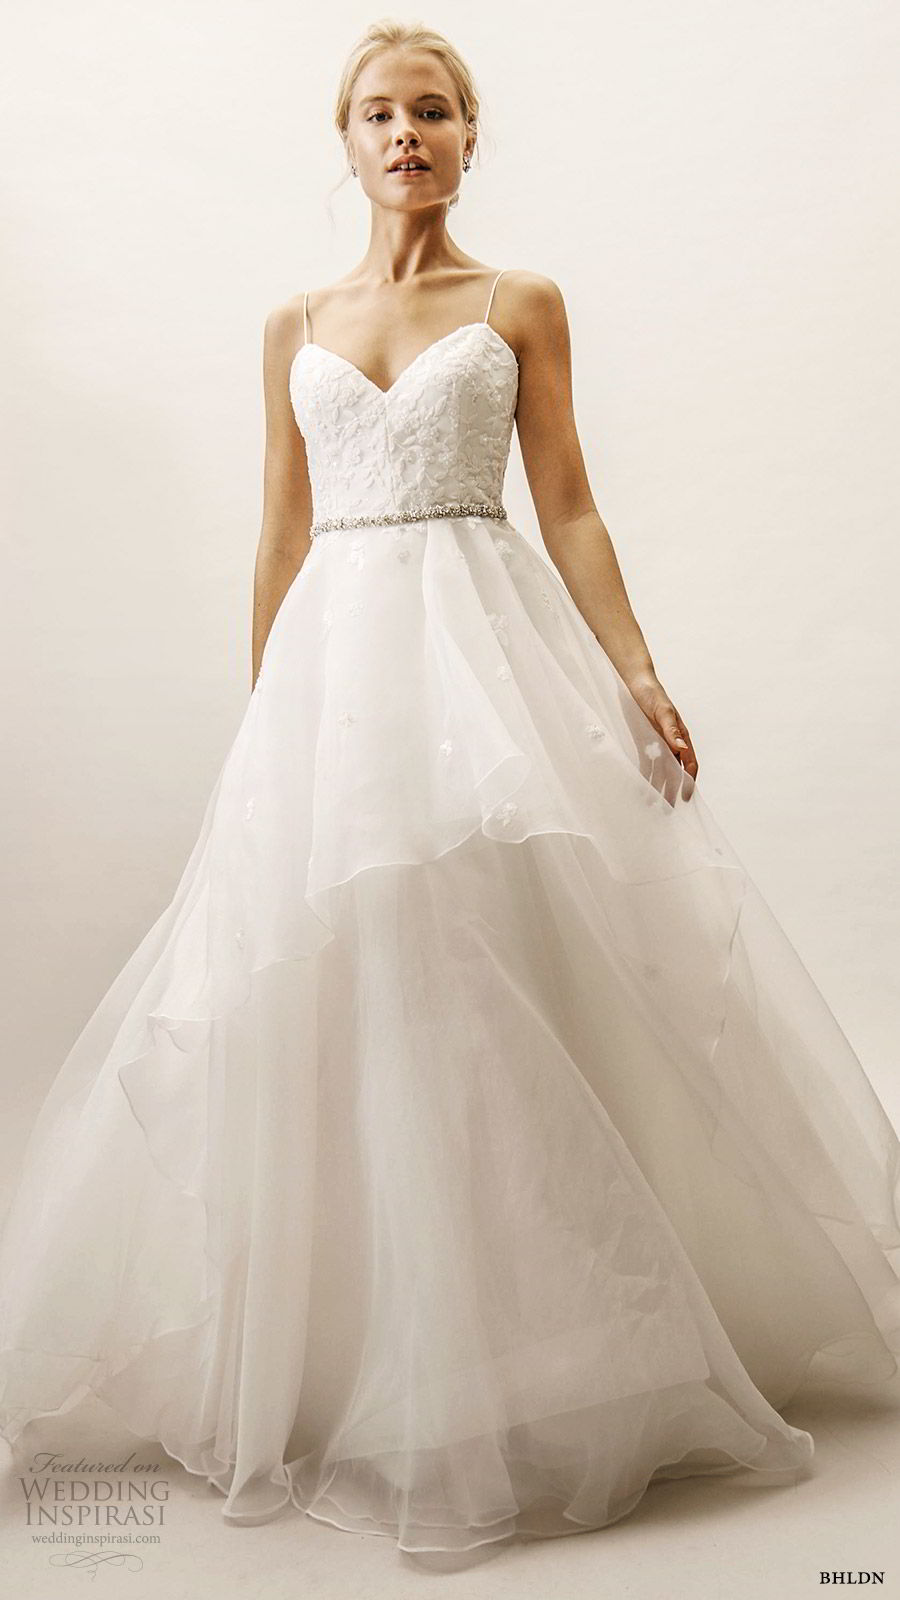 bhldn spring 2019 bridal sleeveless thin straps sweetheart neckline lace bodice a line ball gown wedding dress tiered skirt (6)